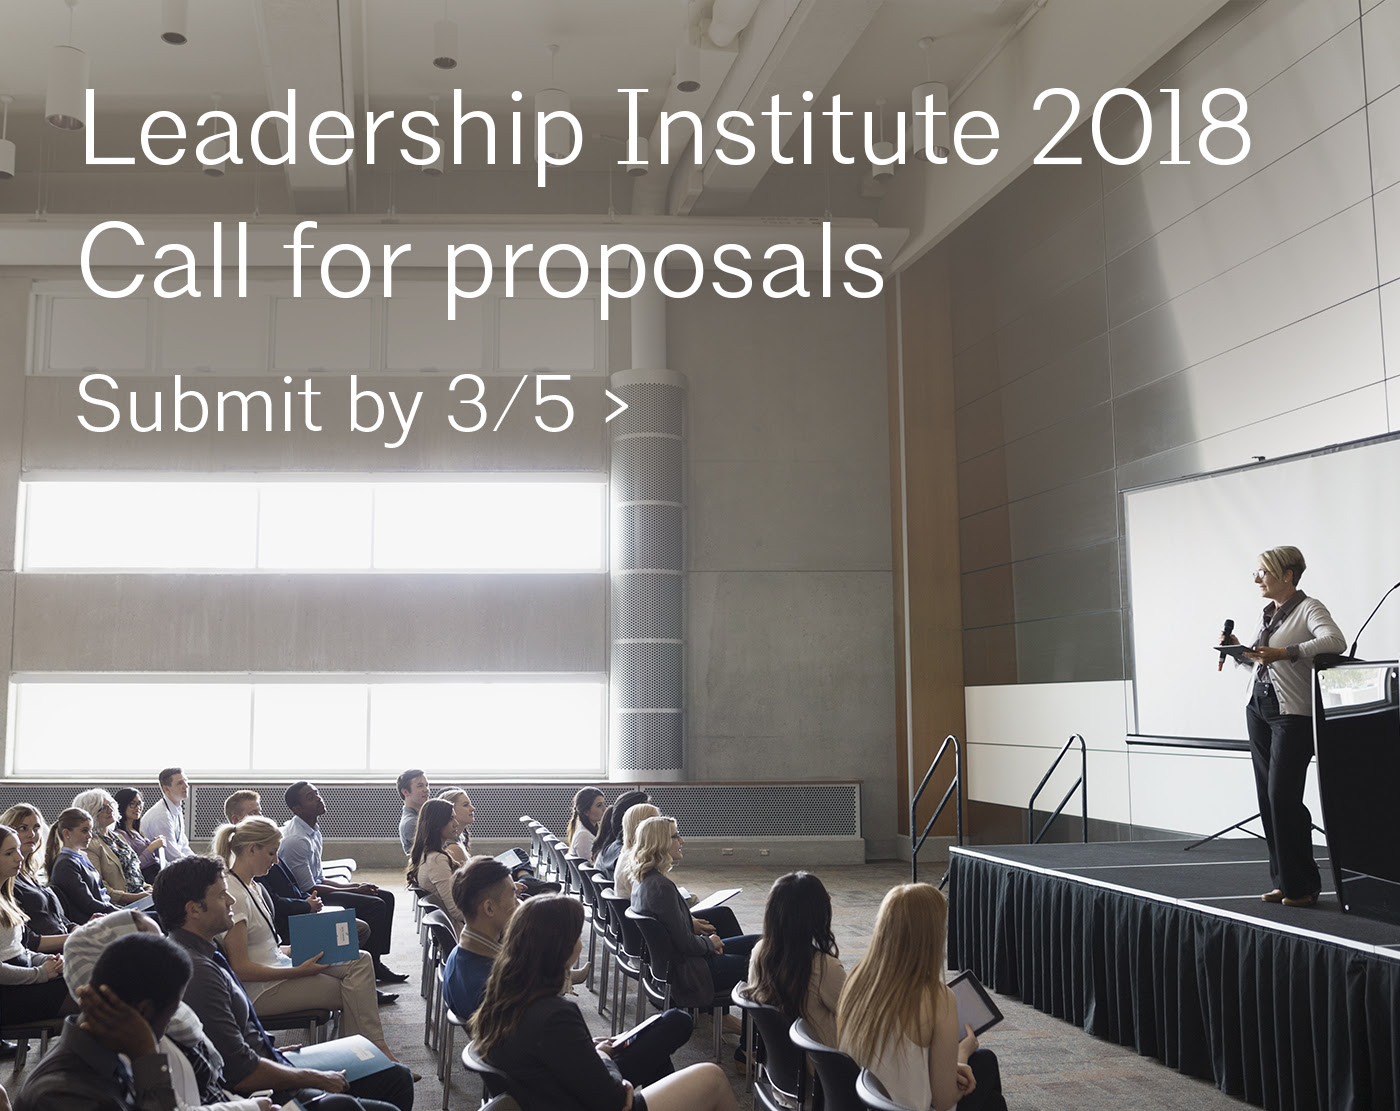 LI18_Call for proposals